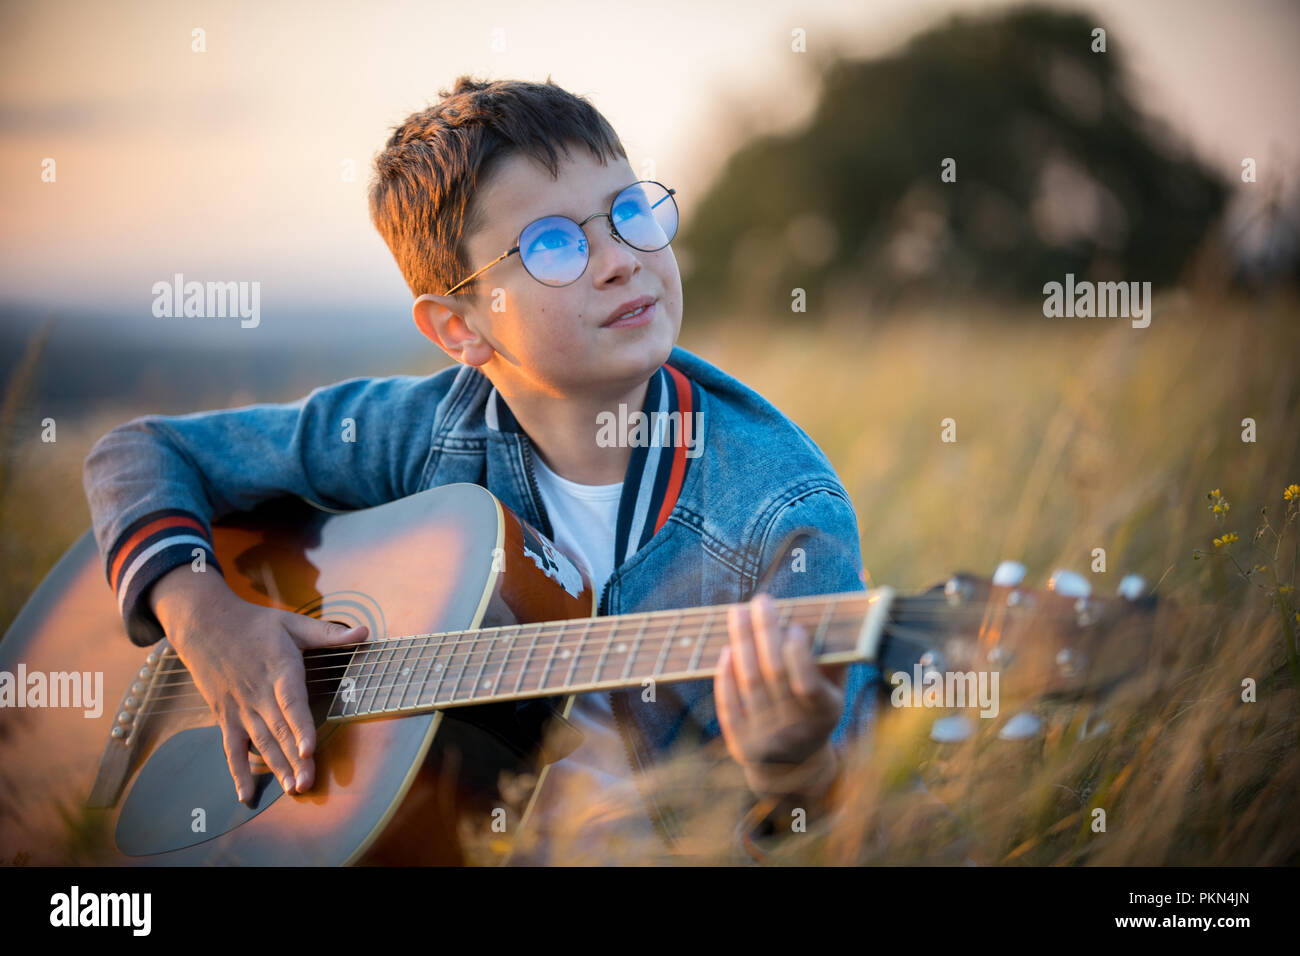 A little boy with glasses playing guitar in the field. Nature, beauty. Stock Photo